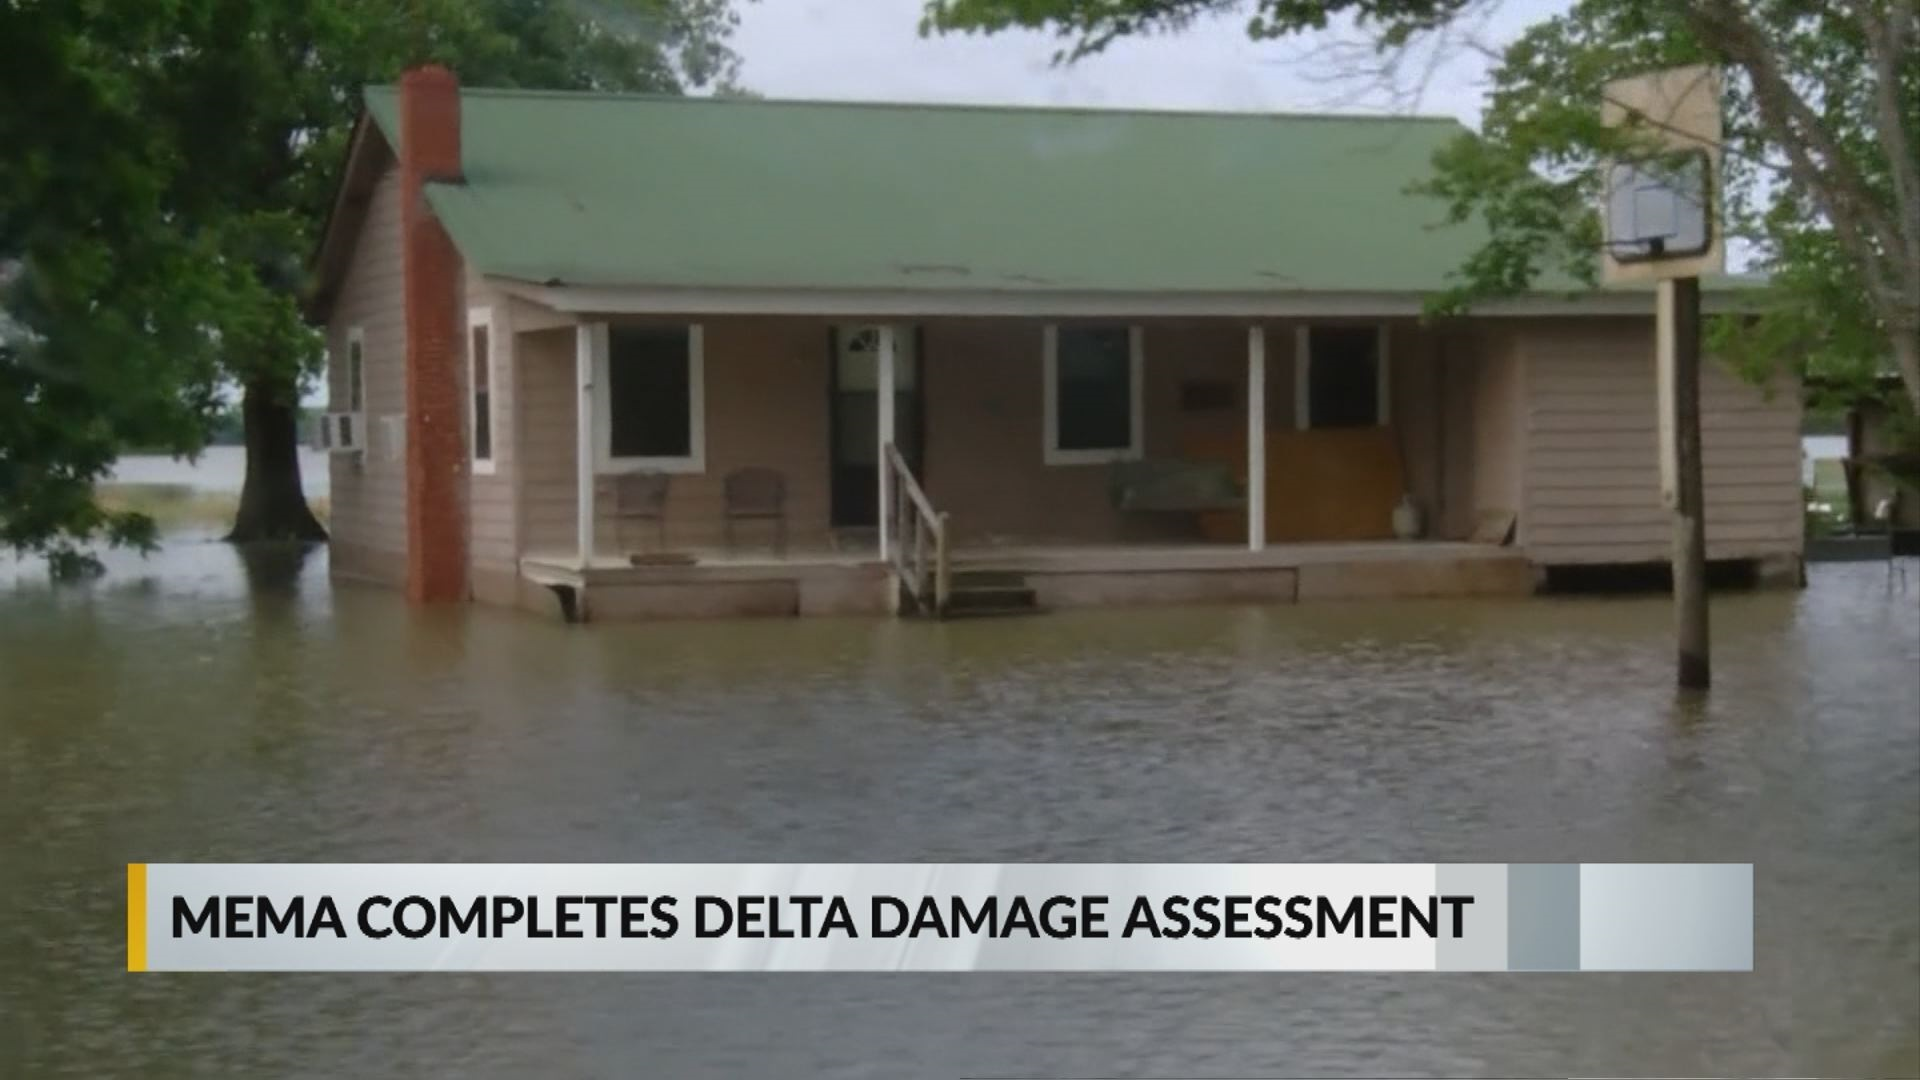 Delta Damage Assessment